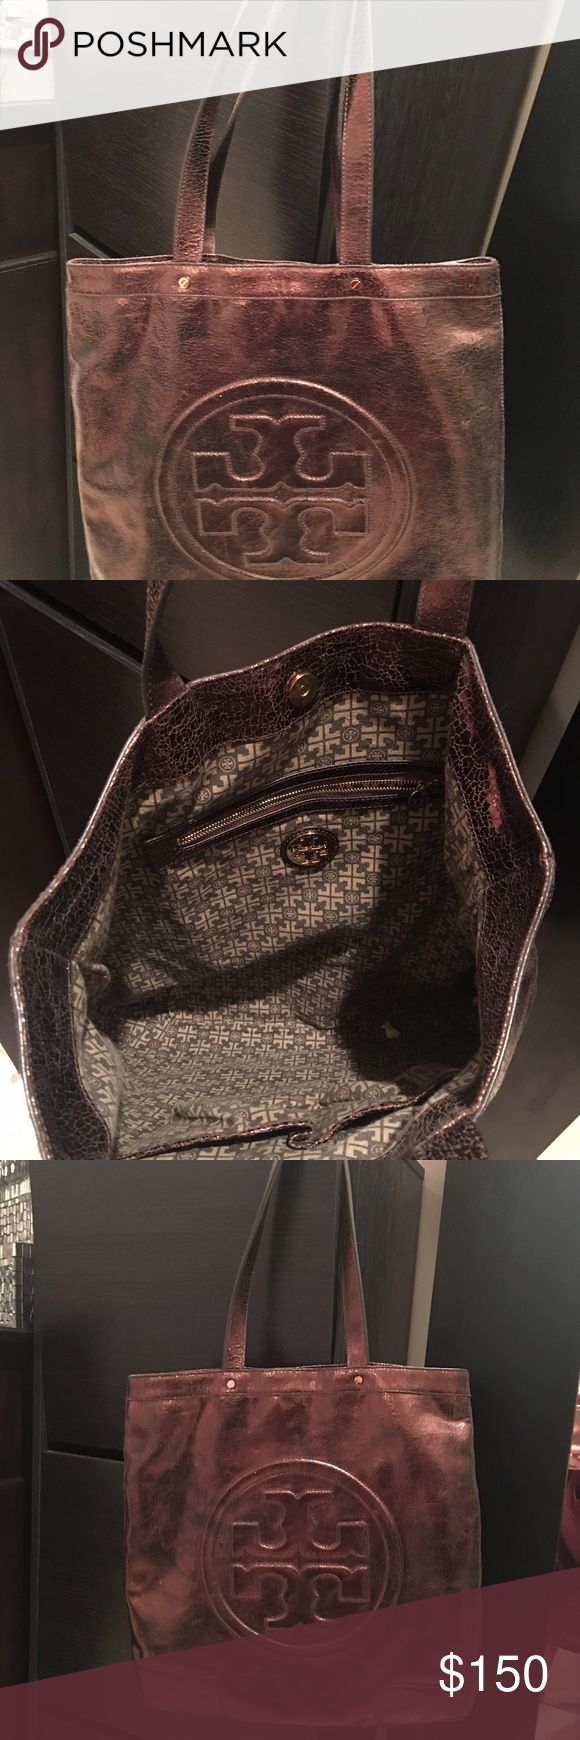 Tory Butch handbag Very good conditions, bronze color Tory Burch Bags Totes